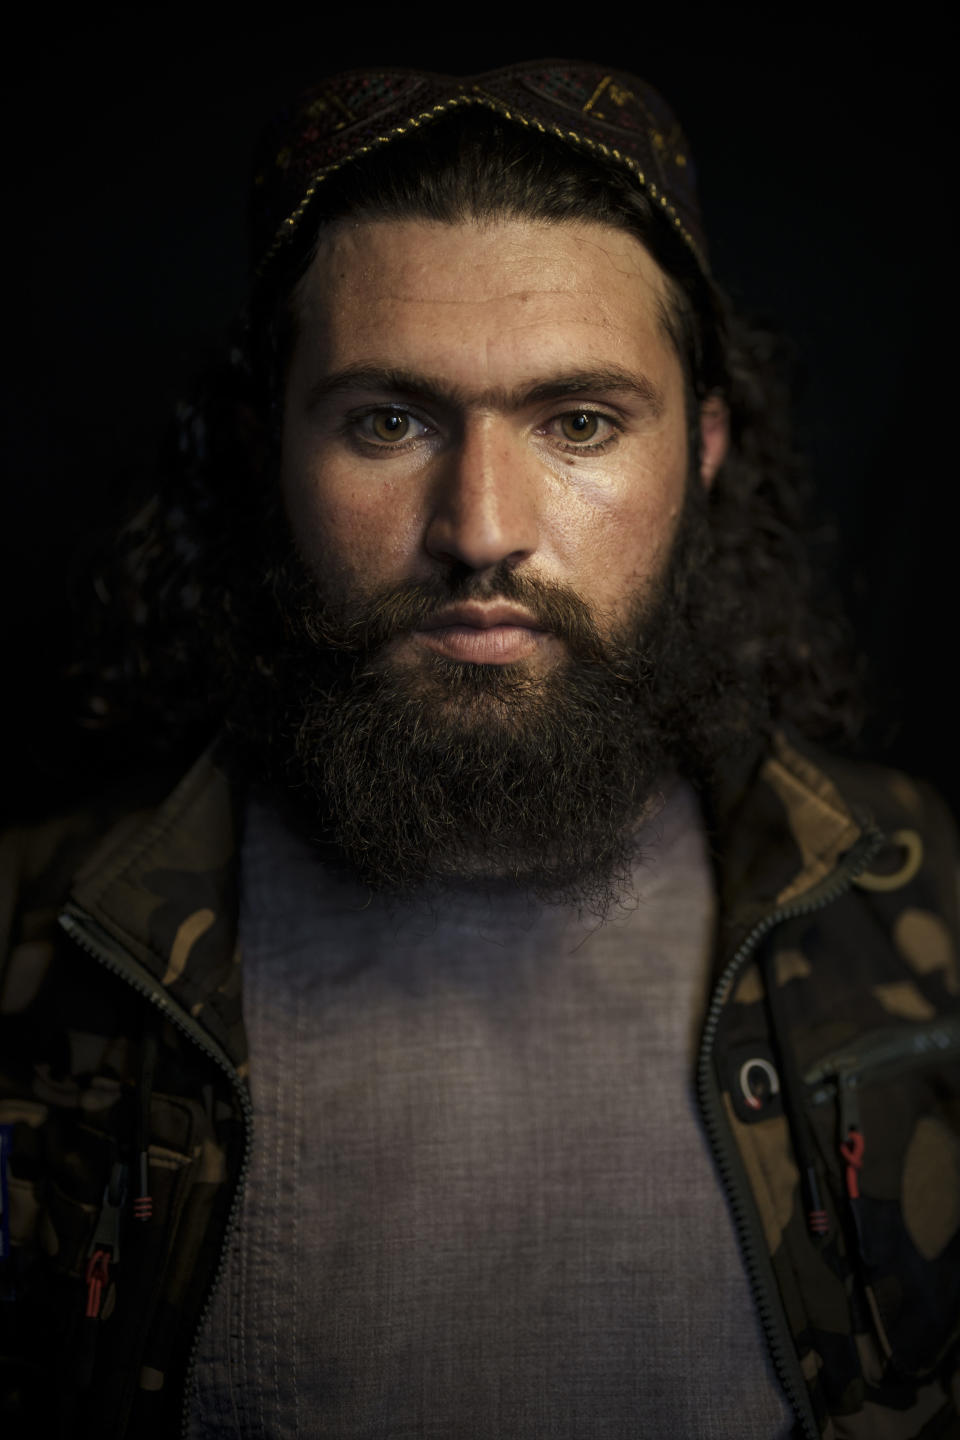 Taliban fighter Shirullah Badri, police chief of district 12, poses for a portrait at his office in Kabul, Afghanistan, Monday, Sept. 20, 2021. Badri says he's been a Taliban for most of his life. He lost his three brothers and many close friends in the war. (AP Photo/Felipe Dana)